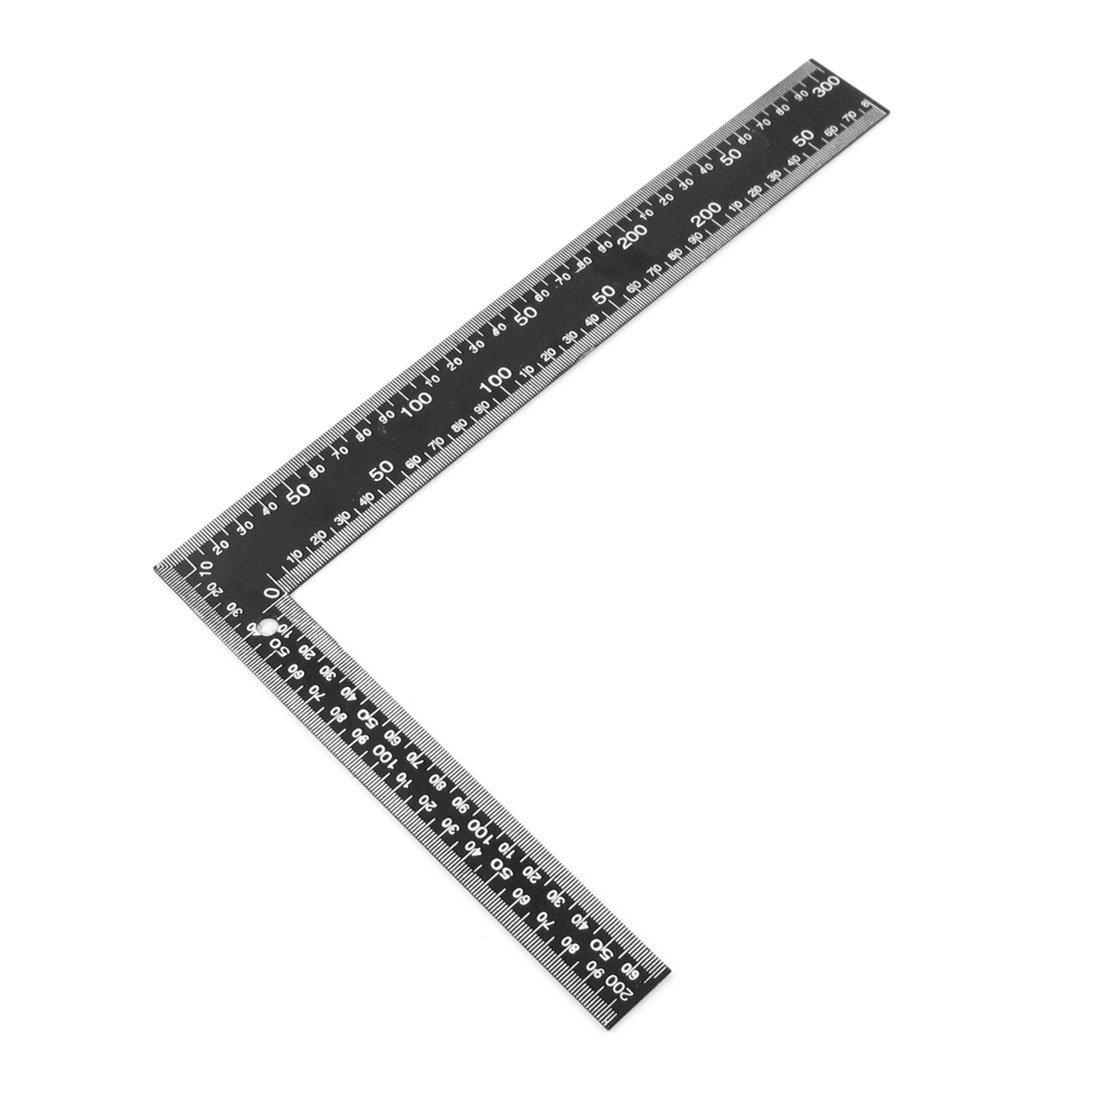 Teacher 0-30cm 0-20cm Measuring Range L Shaped Design Square Ruler Black